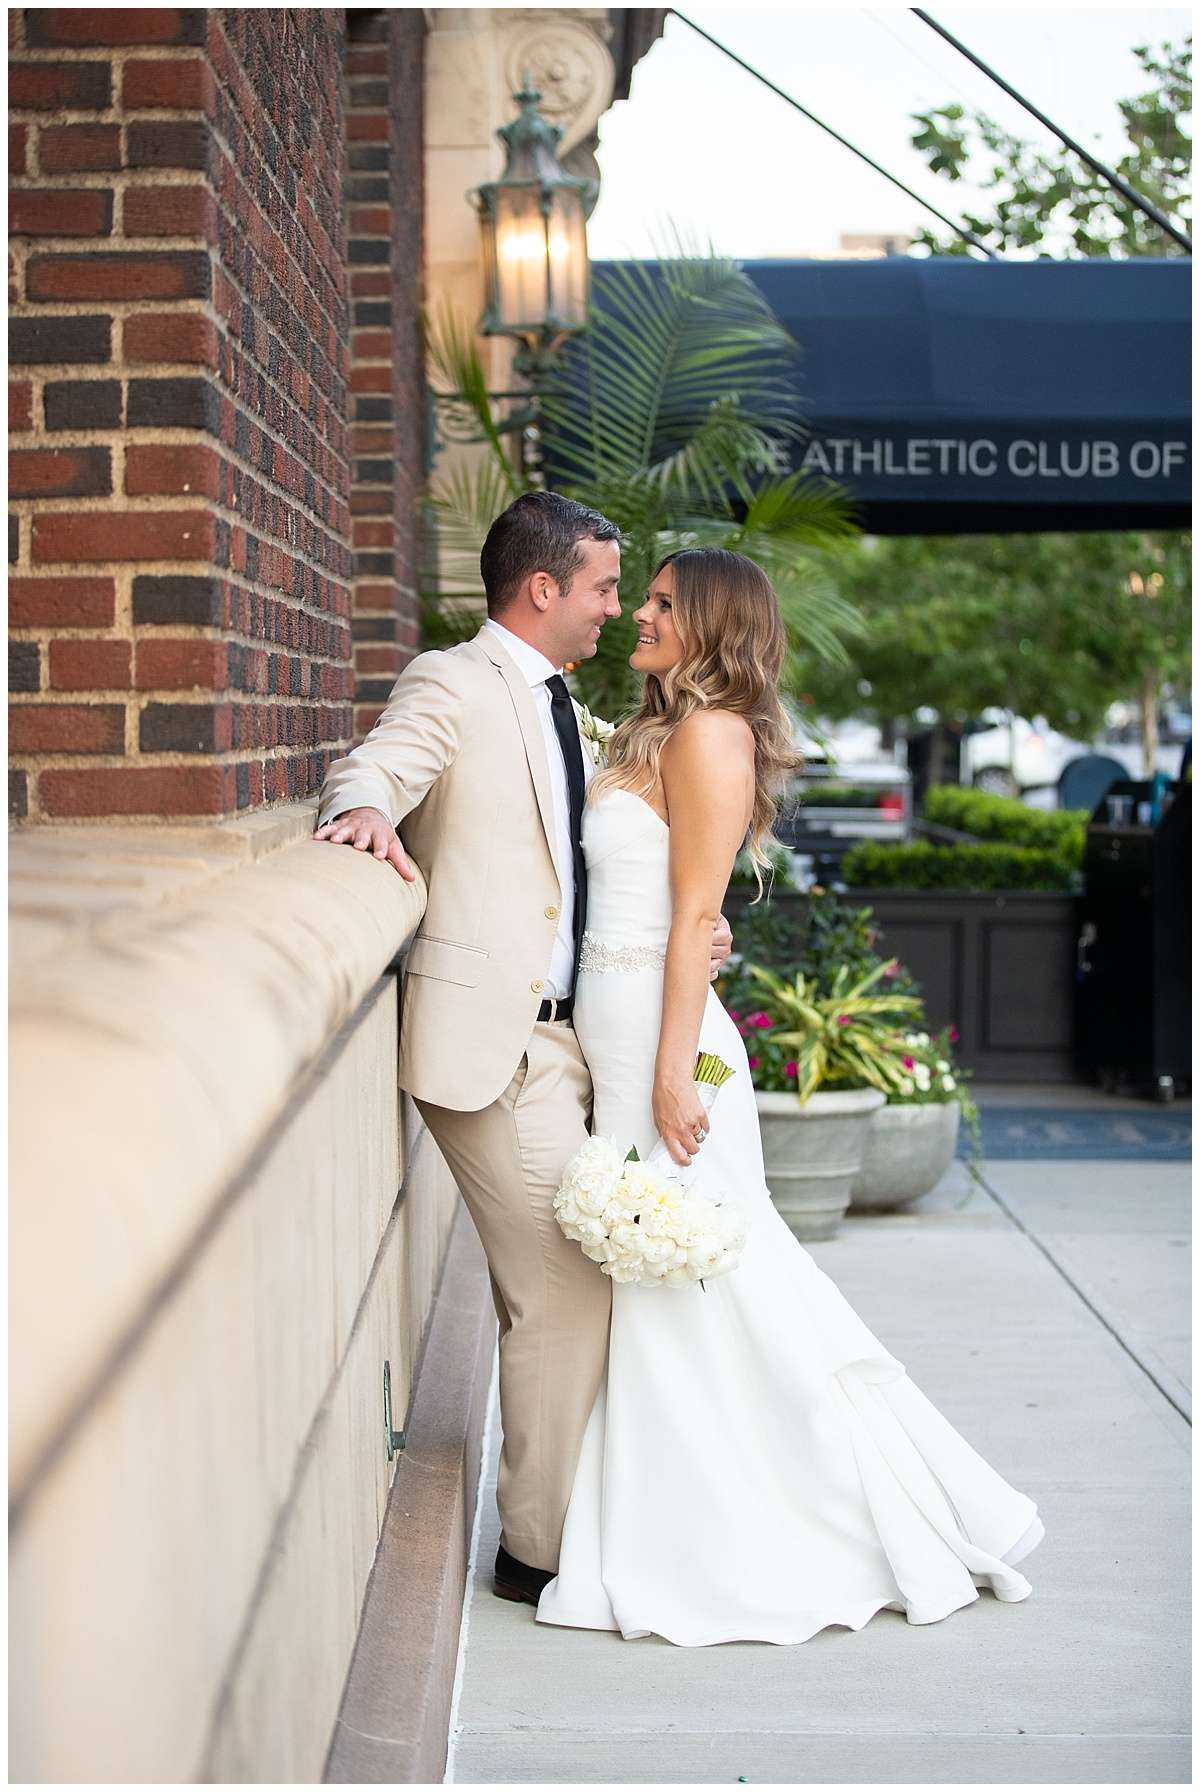 Athletic Club of Columbus Wedding | Columbus Ohio Photography 158